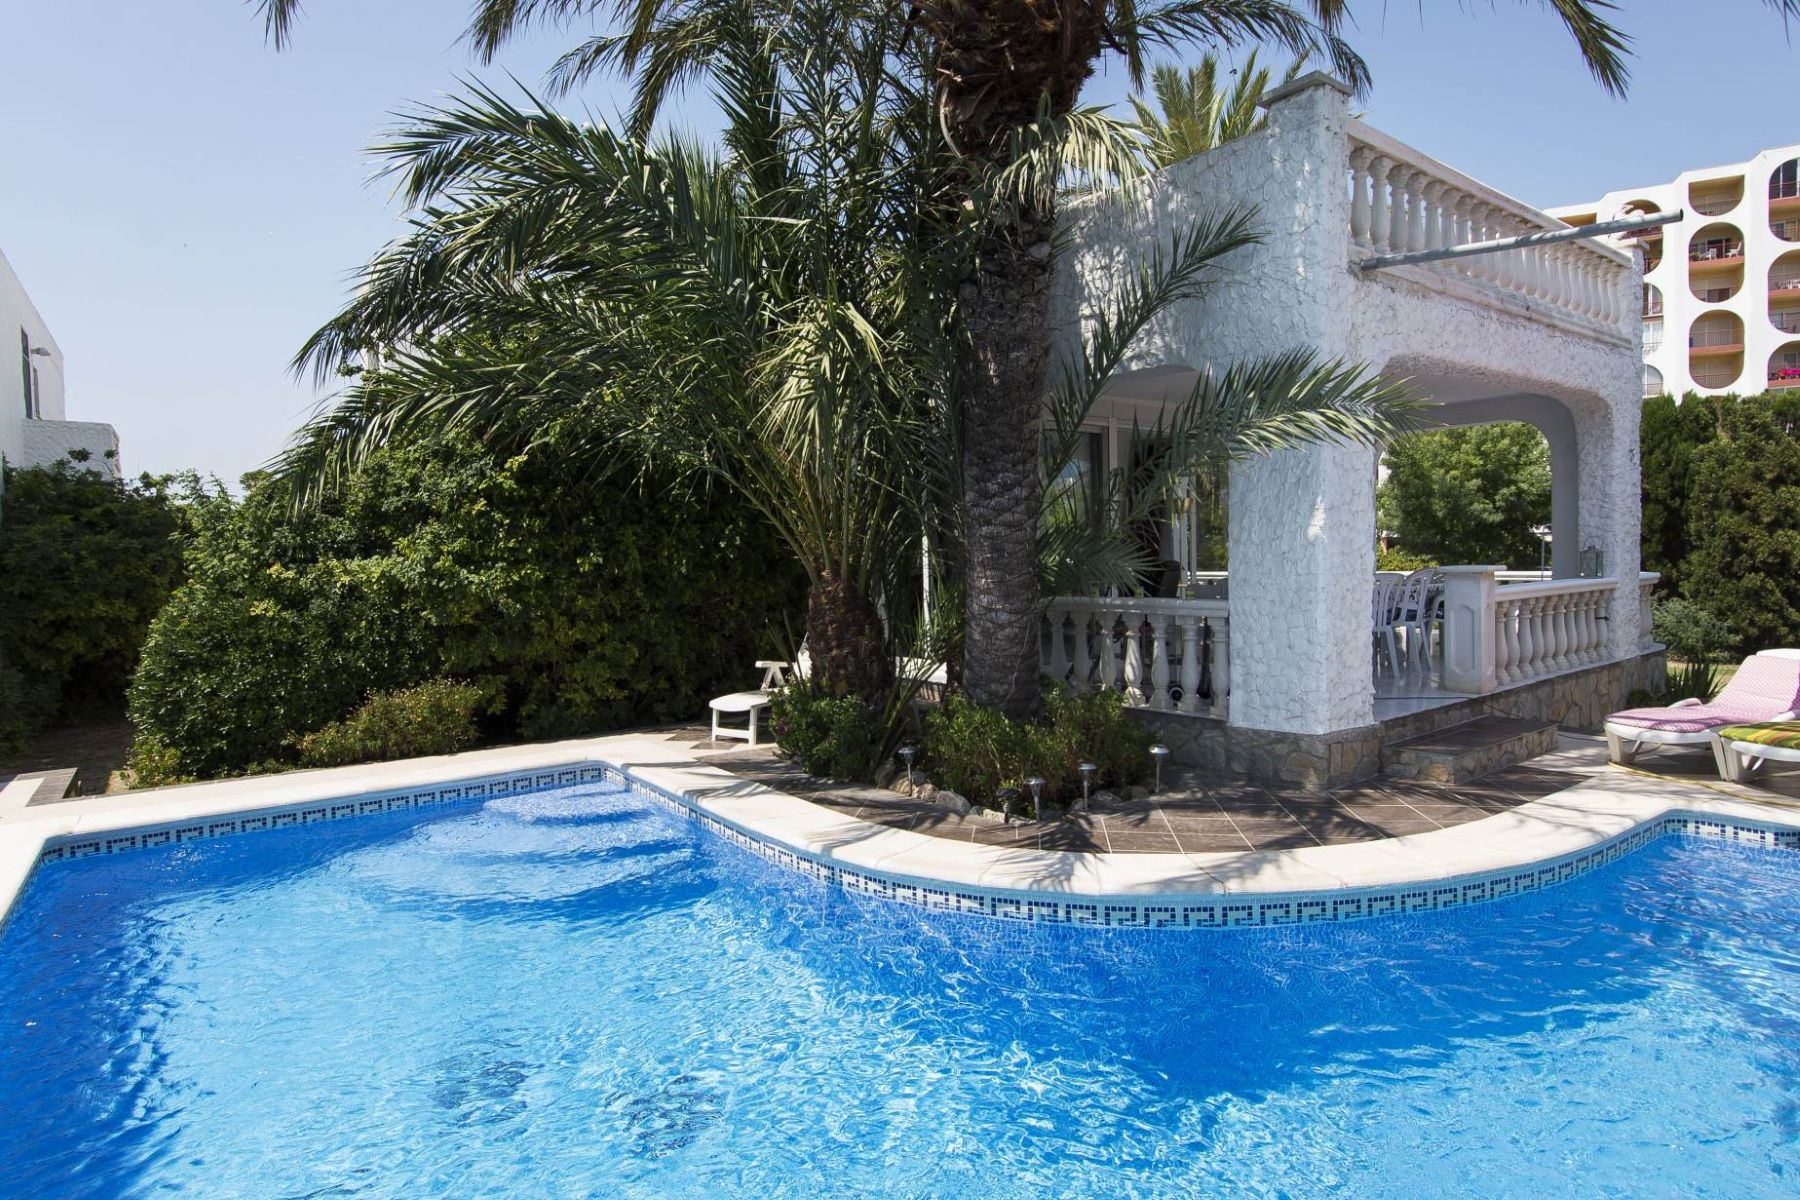 Single Family Home for Sale at House in central toplocation in Empuriabrava Empuriabrava, Costa Brava, 17487 Spain